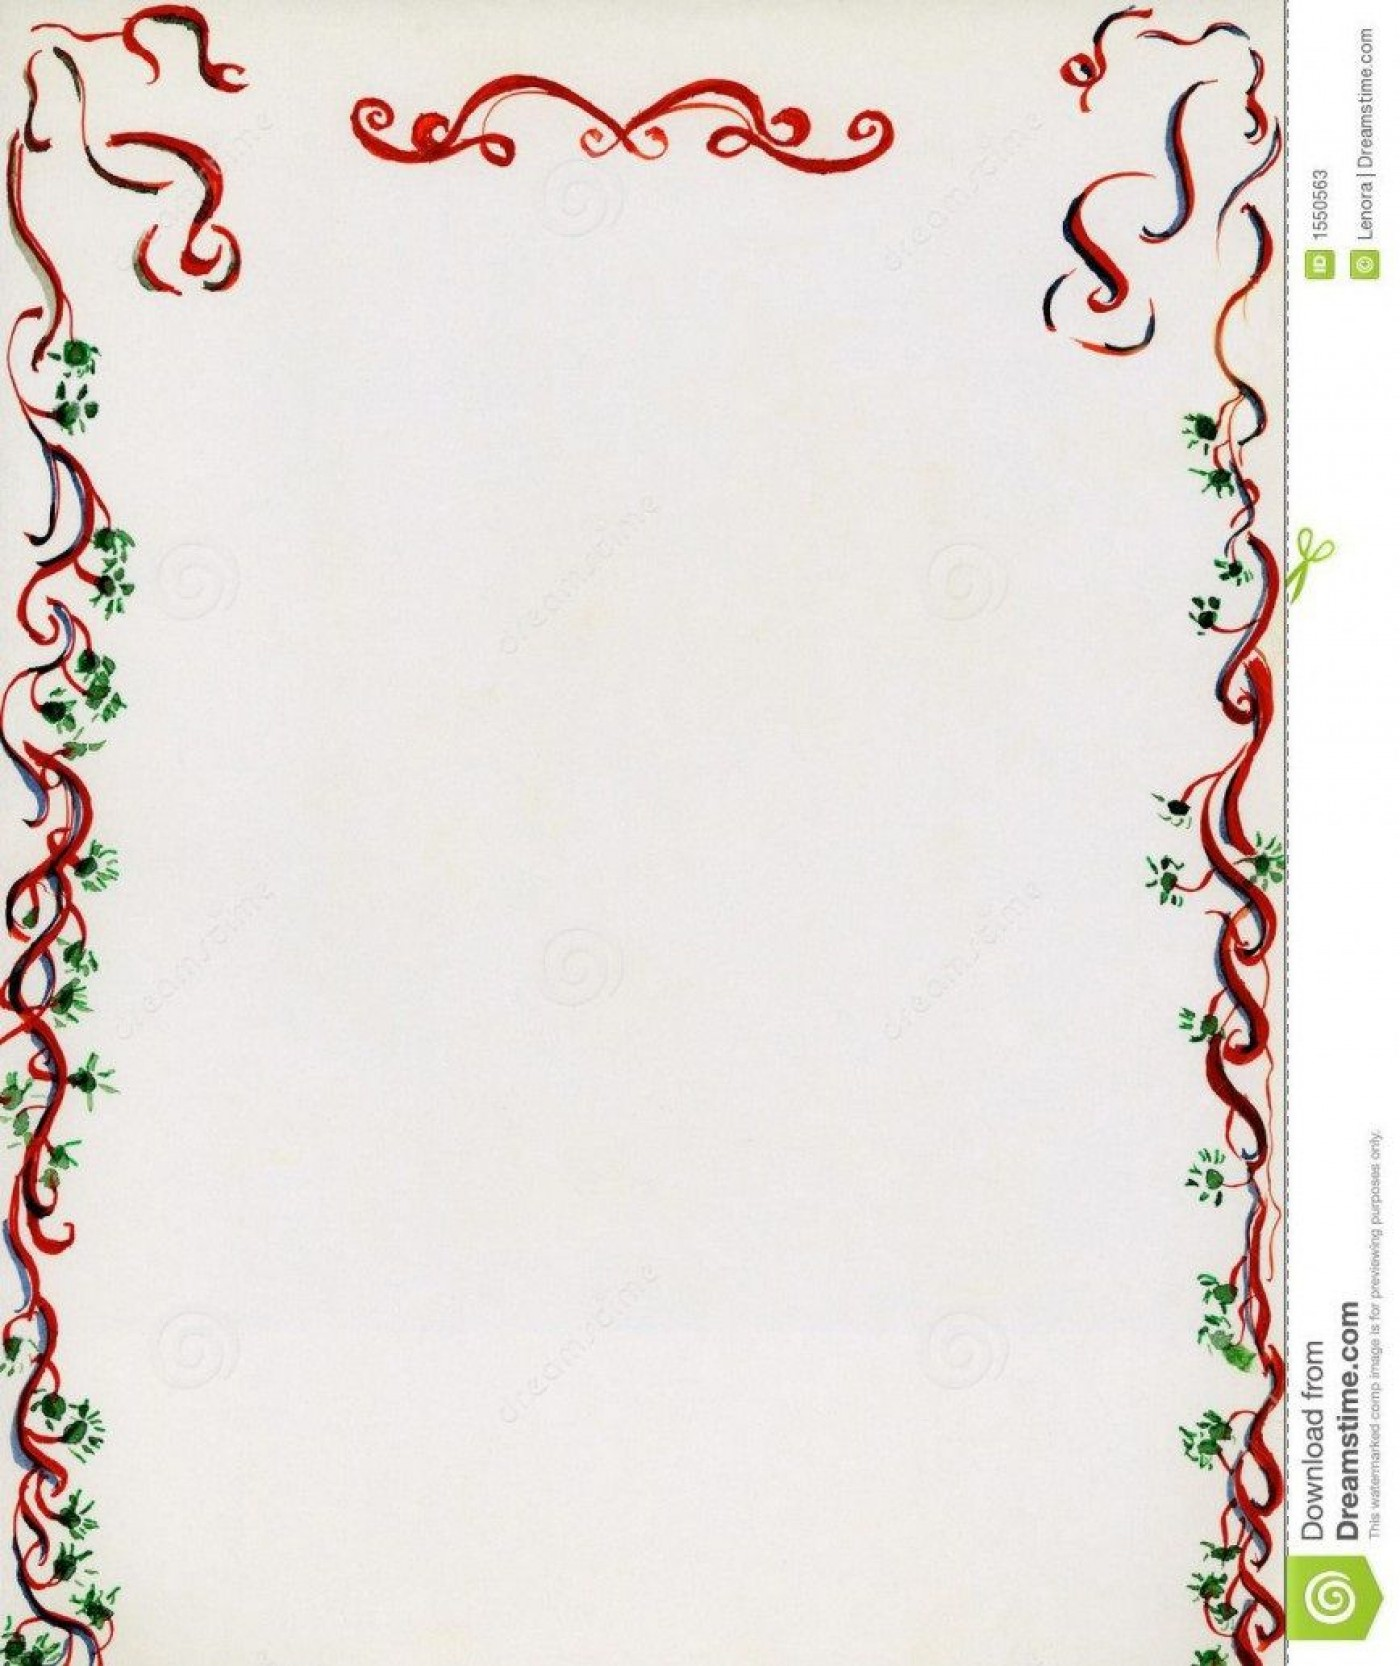 005 Unique Christma Stationery Template Word Free Highest Clarity  Religiou For Downloadable1400